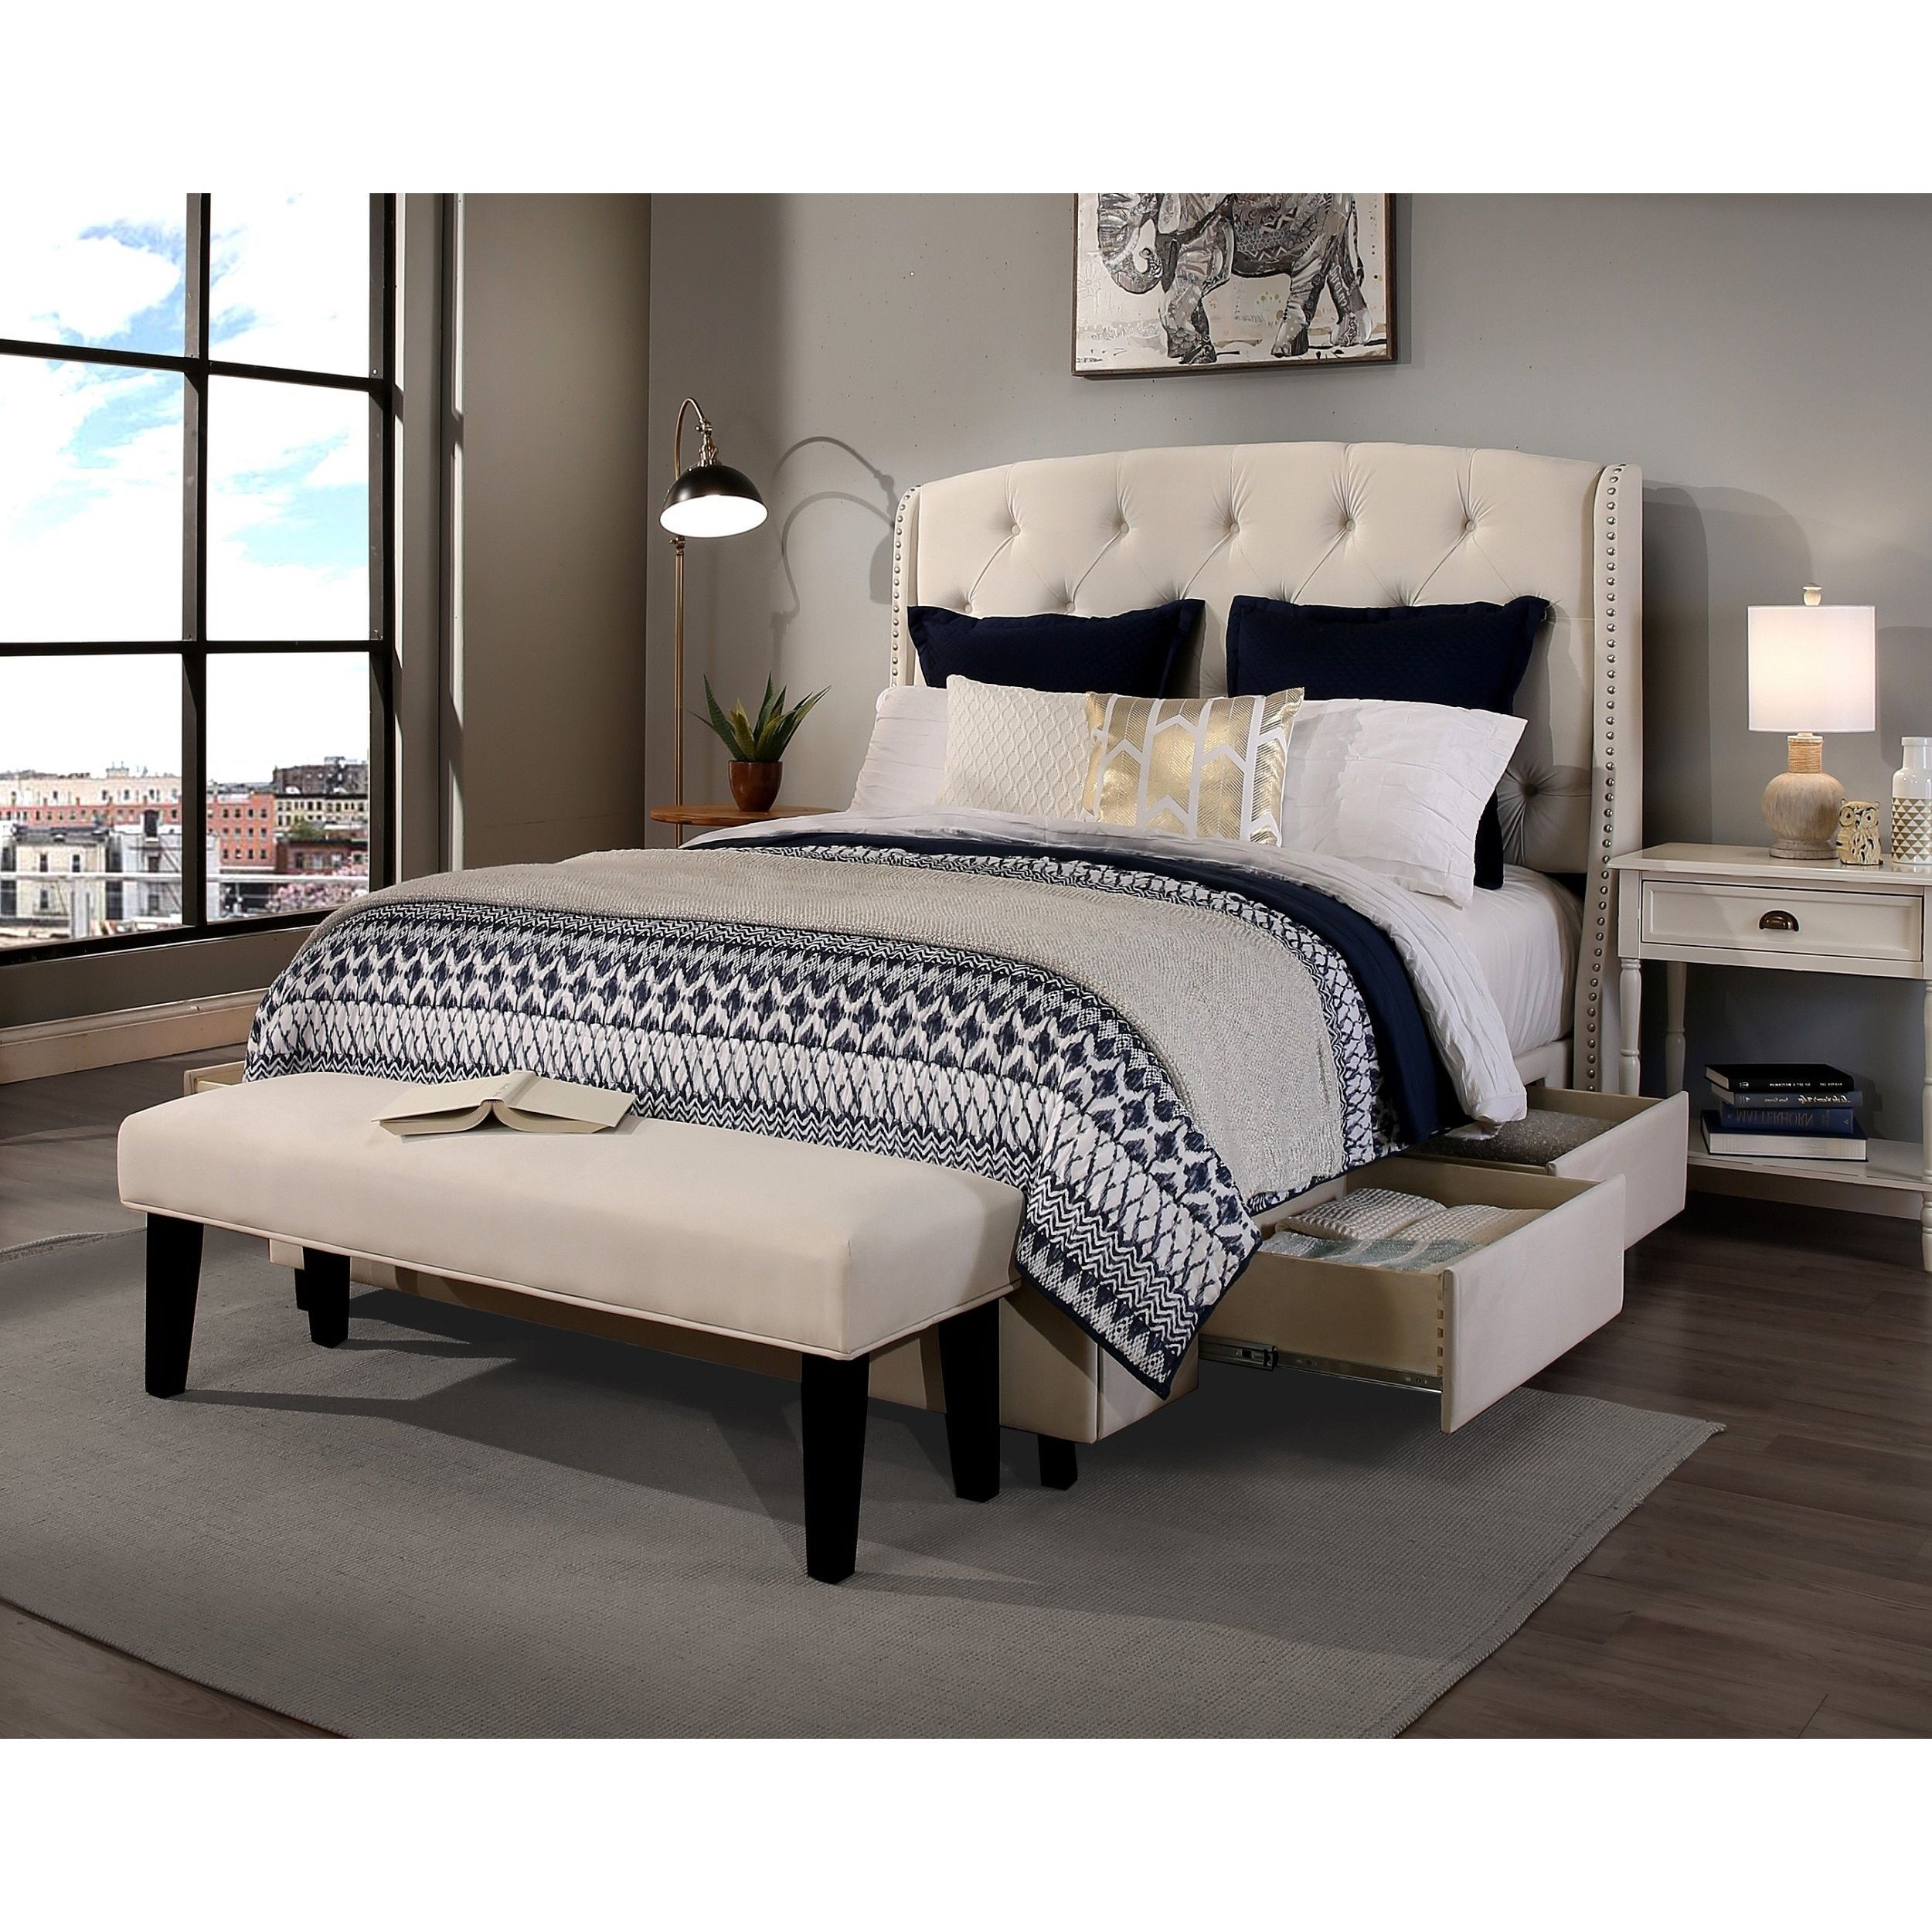 Republic Design House Queen Size Peyton Ivory Headboard Storage Bed And Bench Collection 52 Inch Only Cream